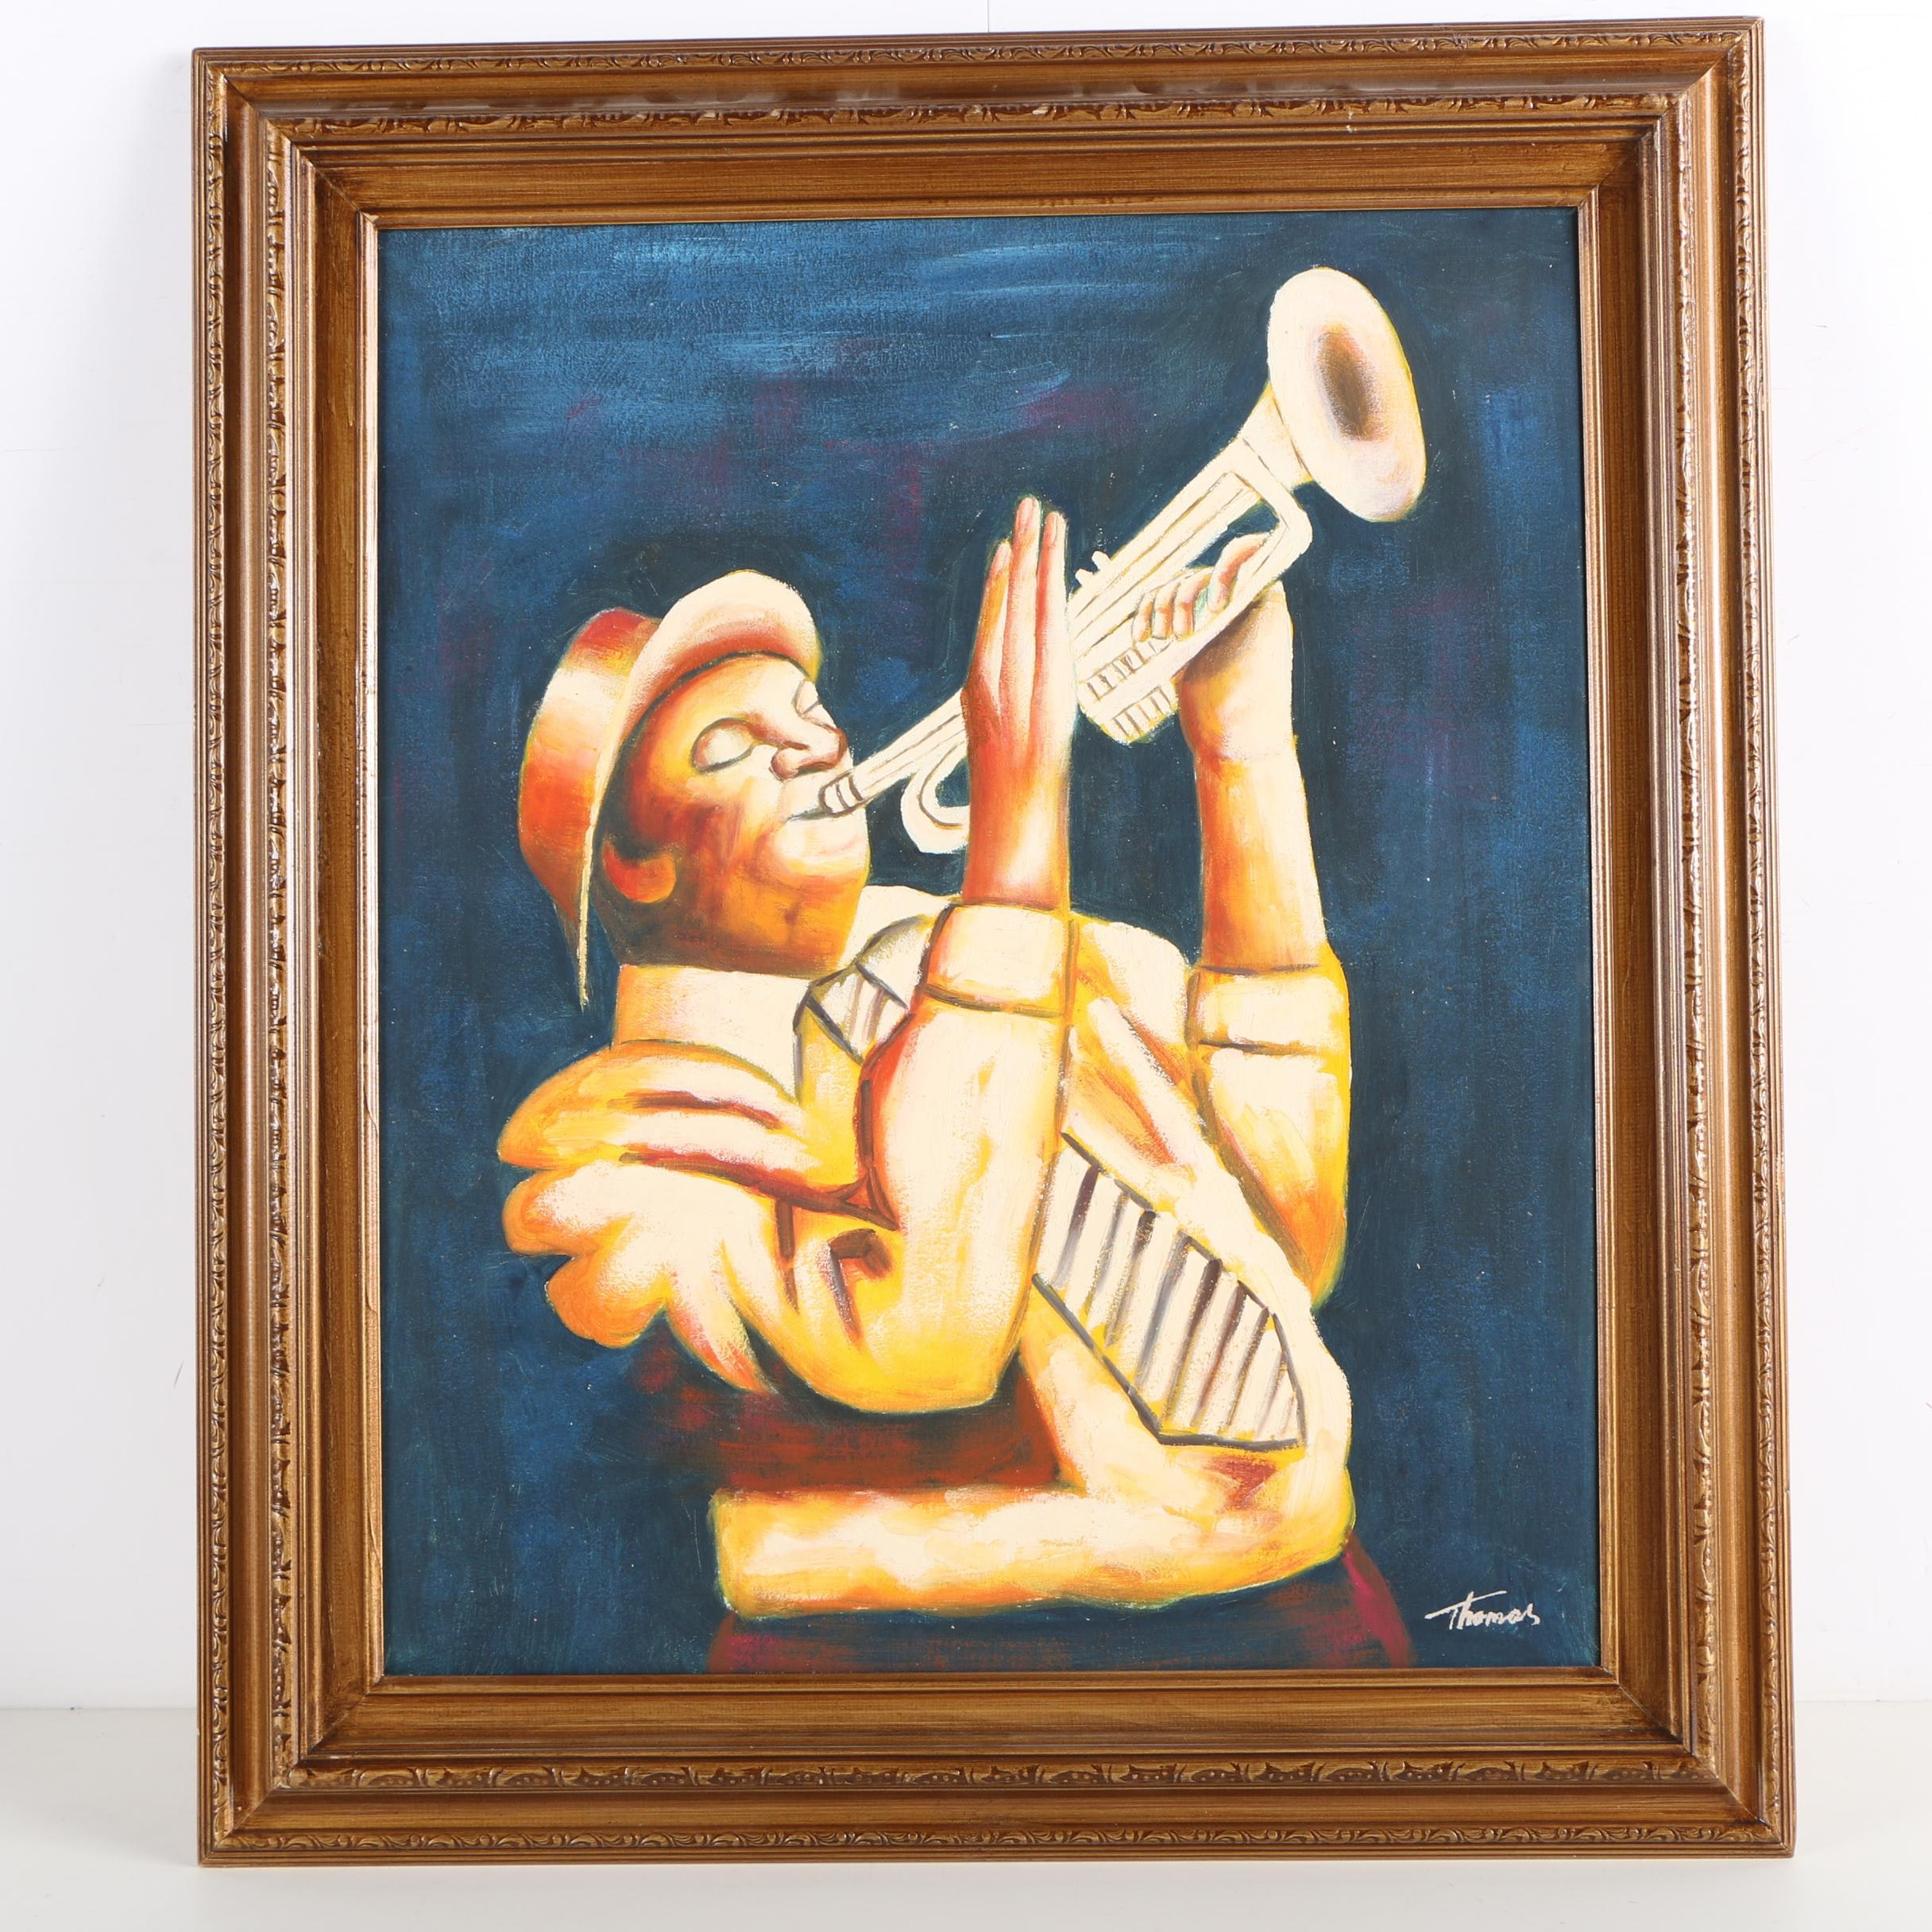 Thomas Oil Painting of Trumpet Player